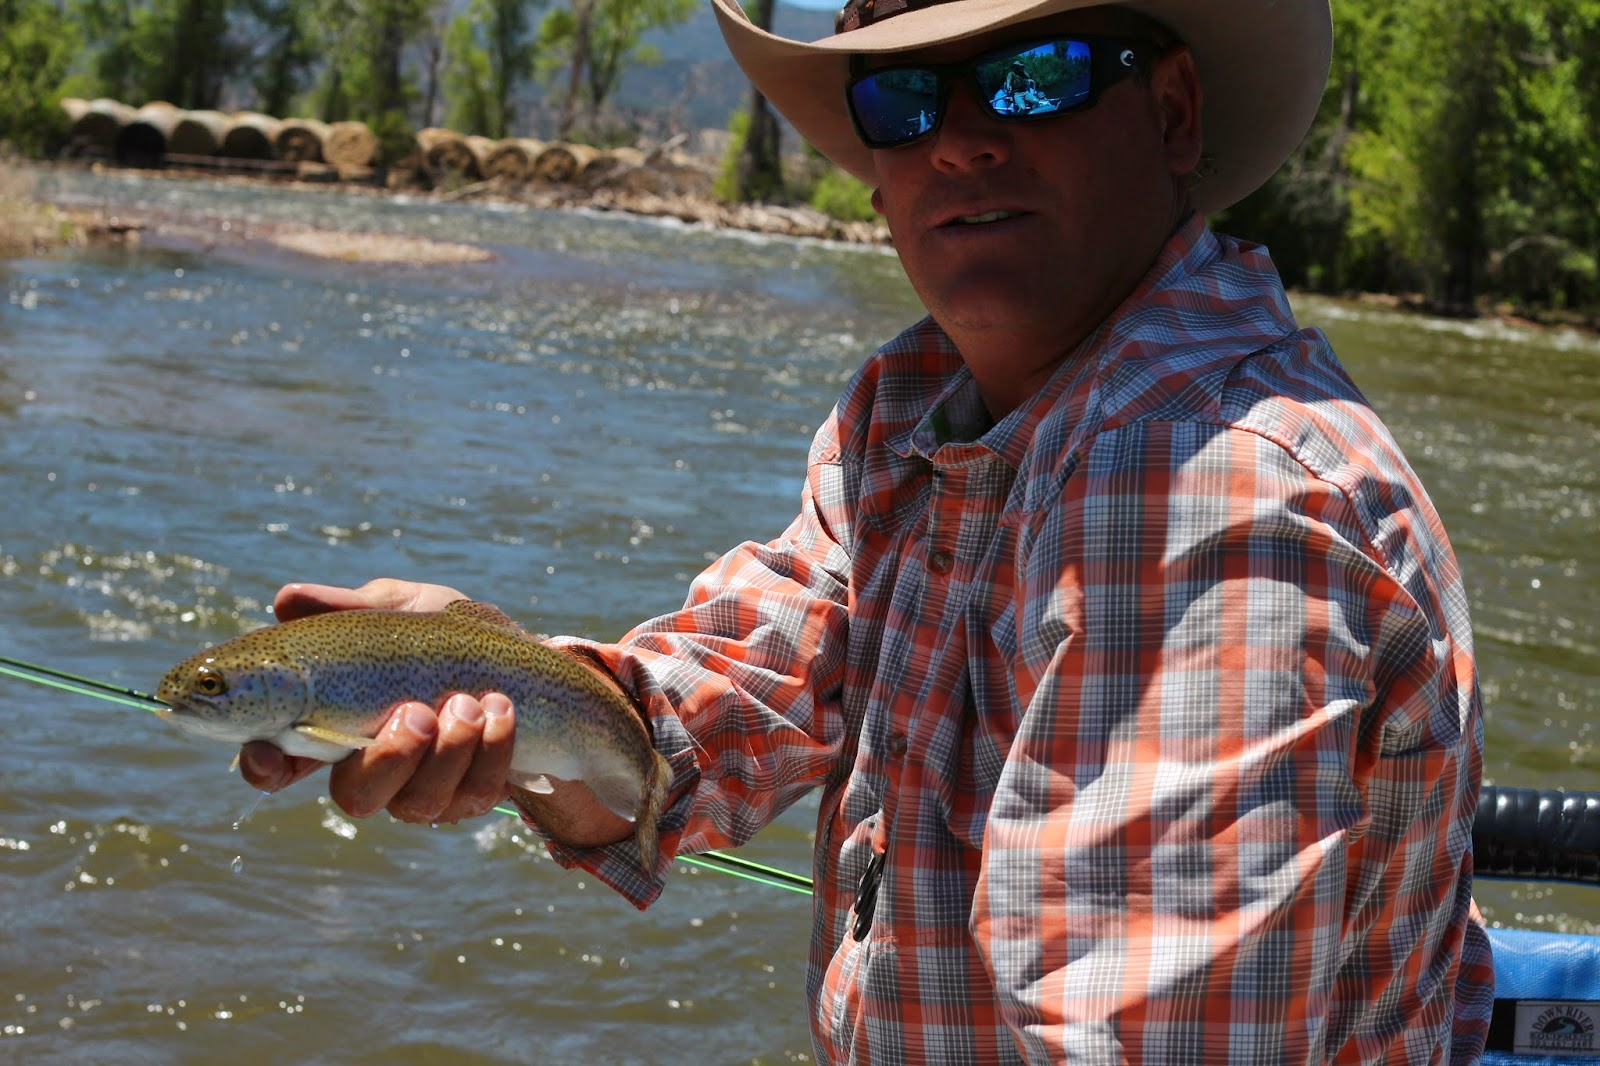 Roaring+fork+river+fly+fishing+with+Jay+Scott+Outdoors+13.JPG